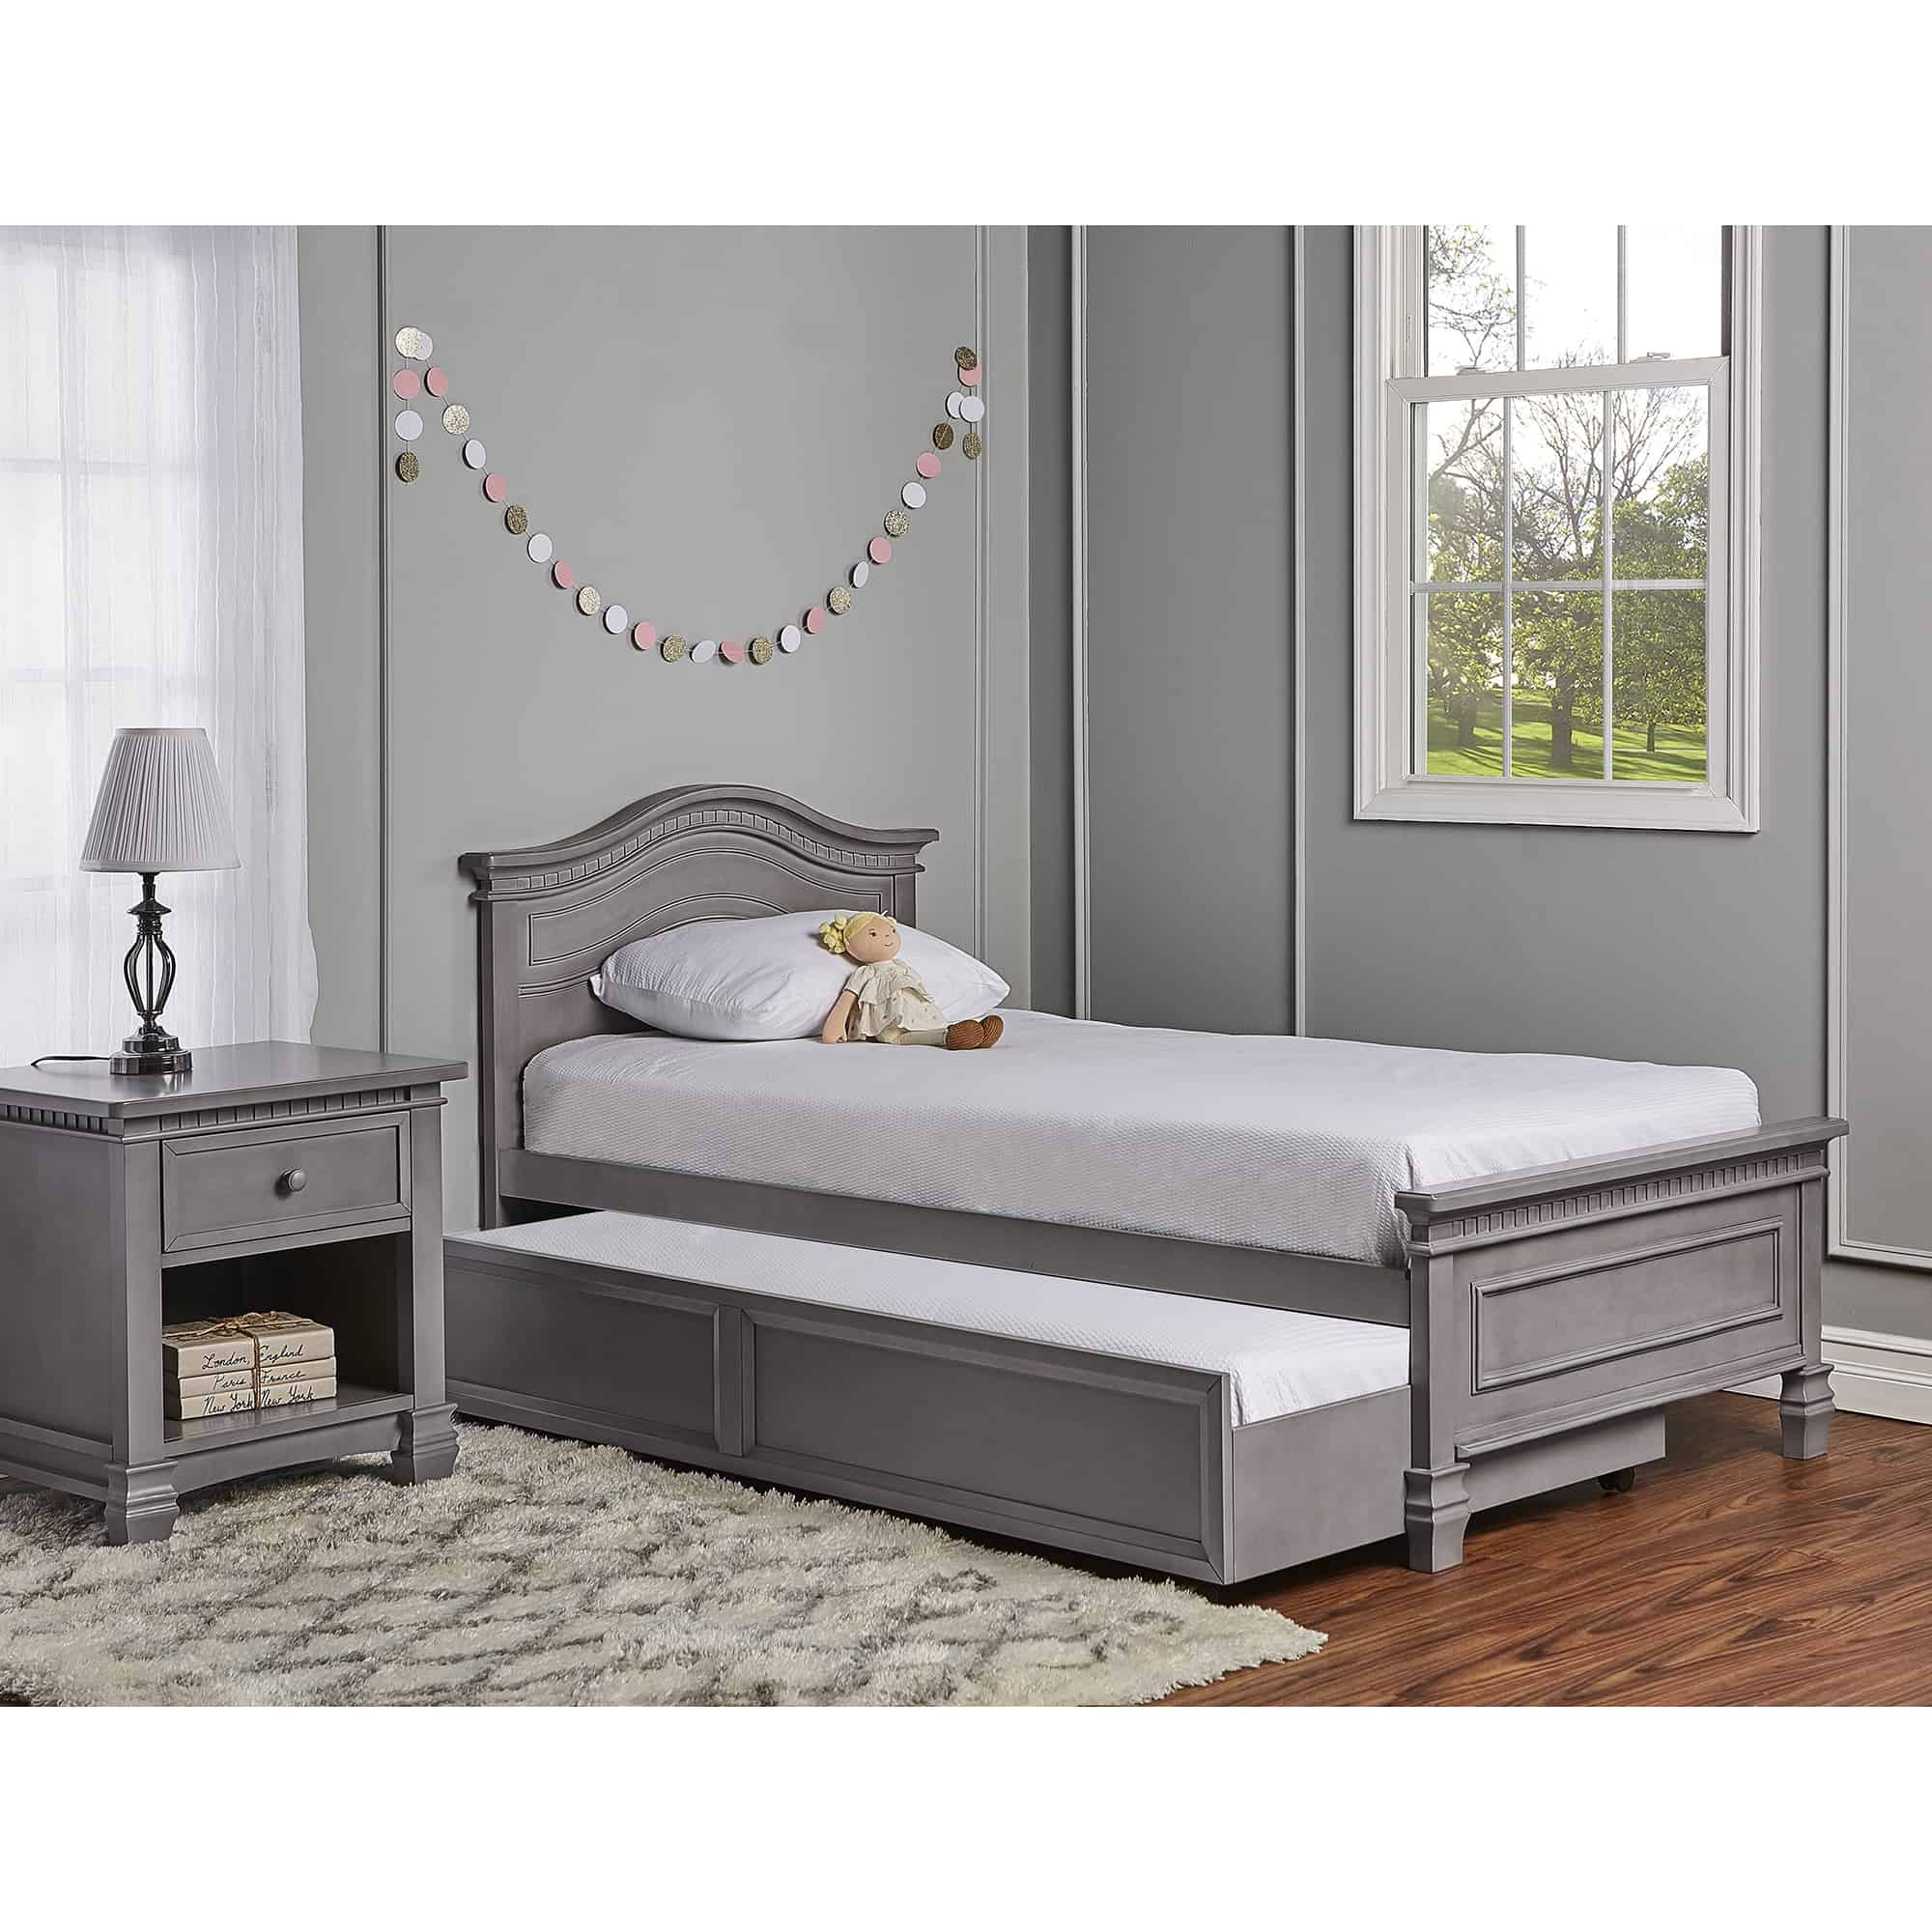 Evolur Cheyenne Youth Bed